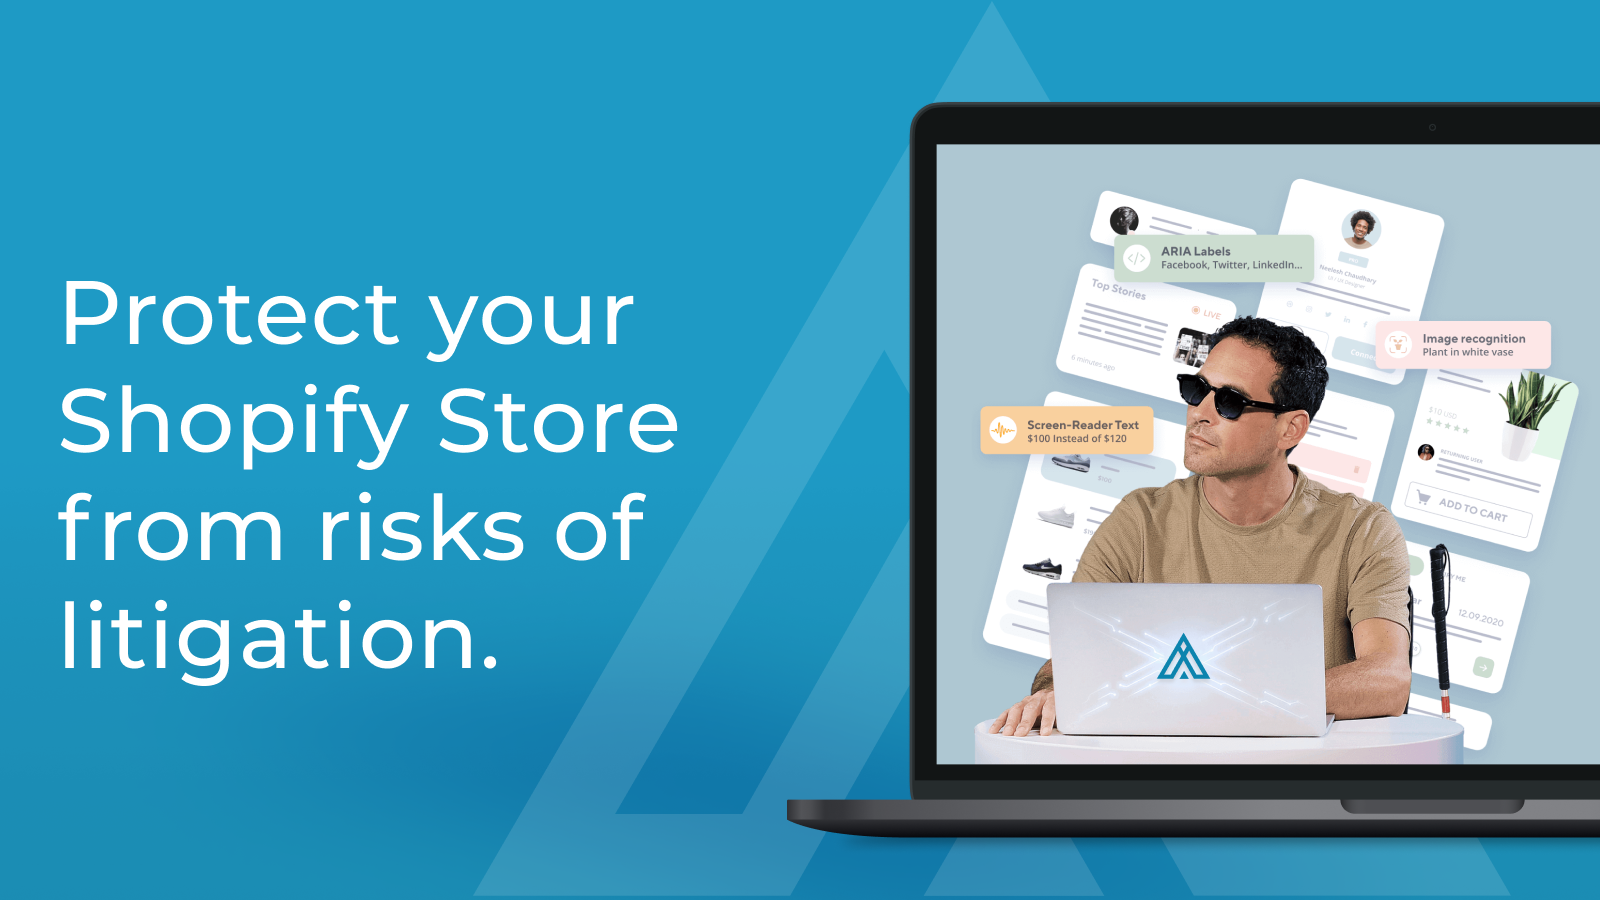 Protect your Shopify Store from risks of litigation.